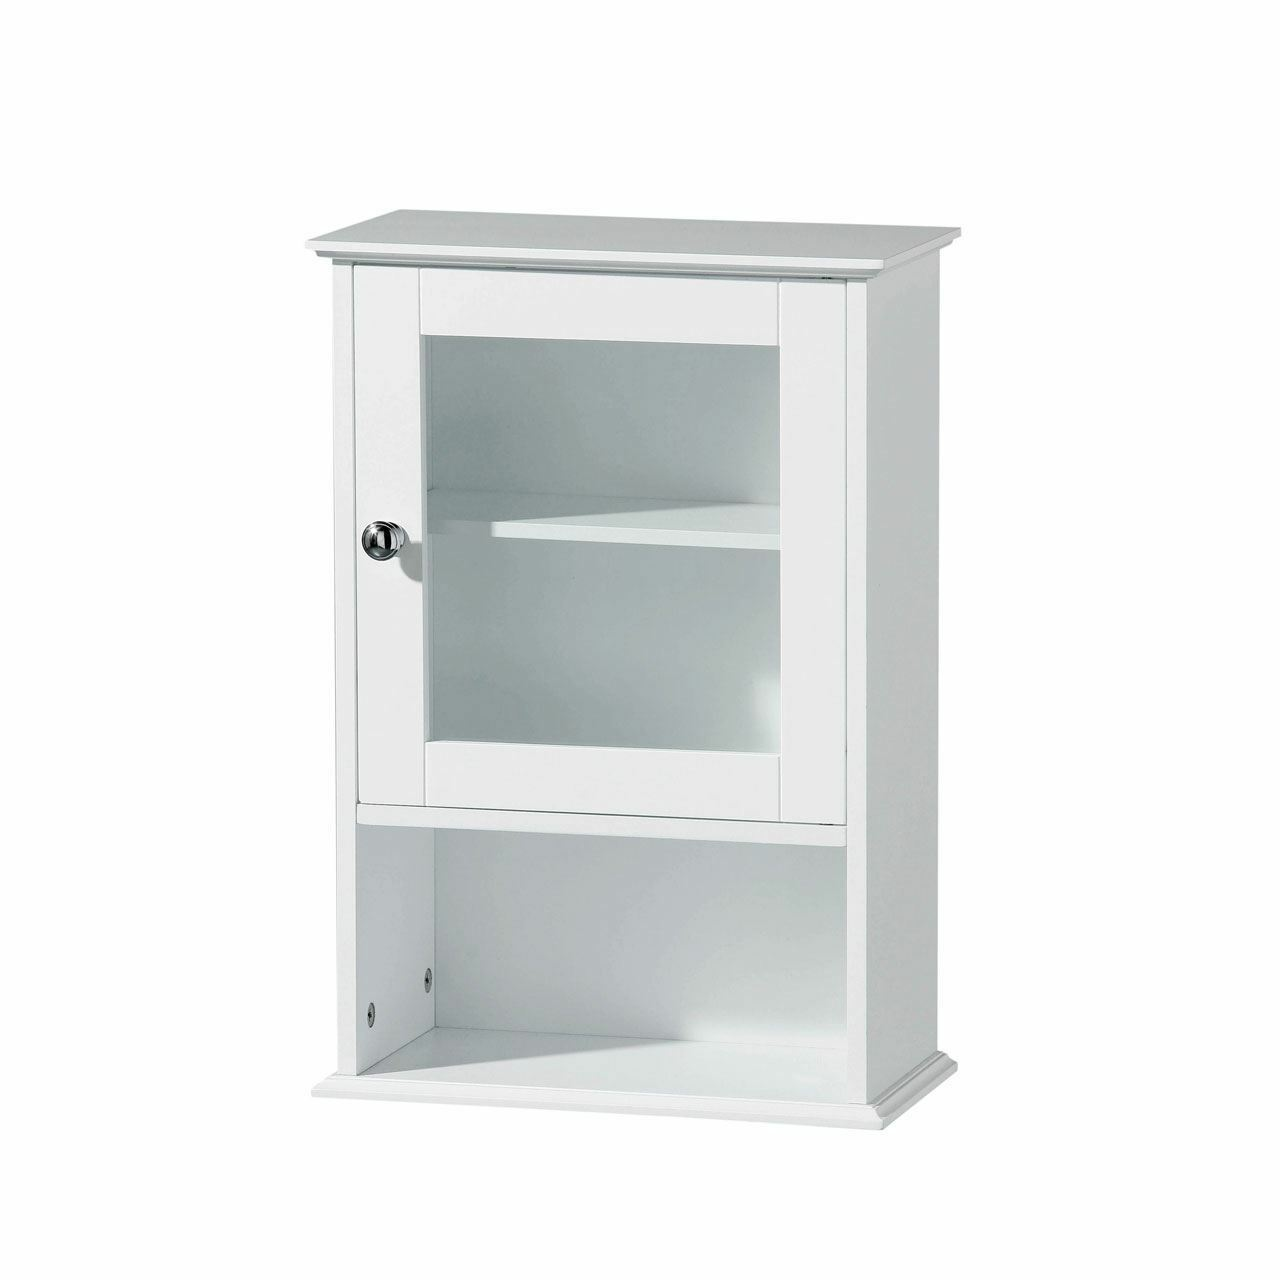 White Wooden Wall Mounted Bathroom Storage Cabinet With Glass Door